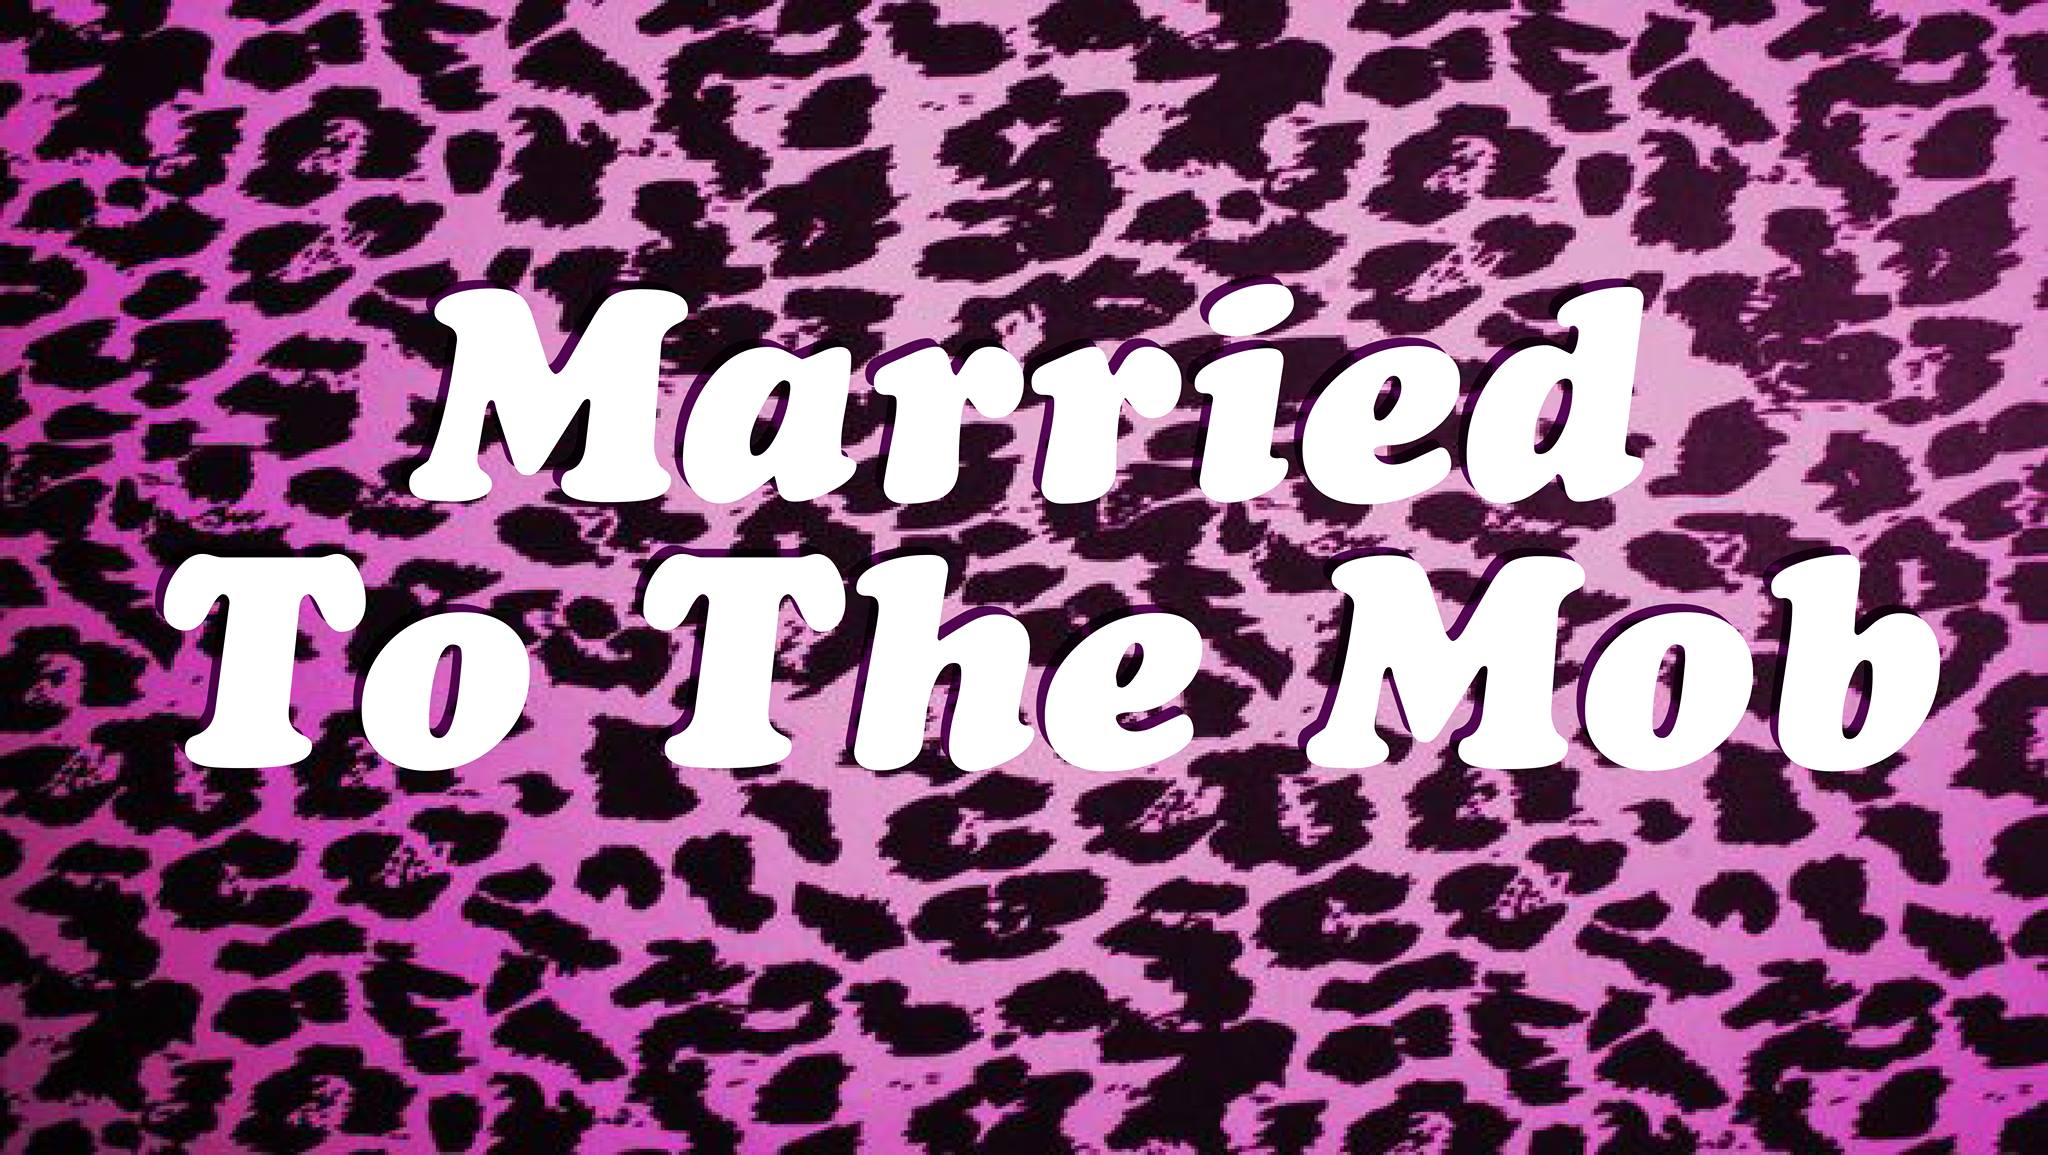 Married to the Mob – Streetwear clothes